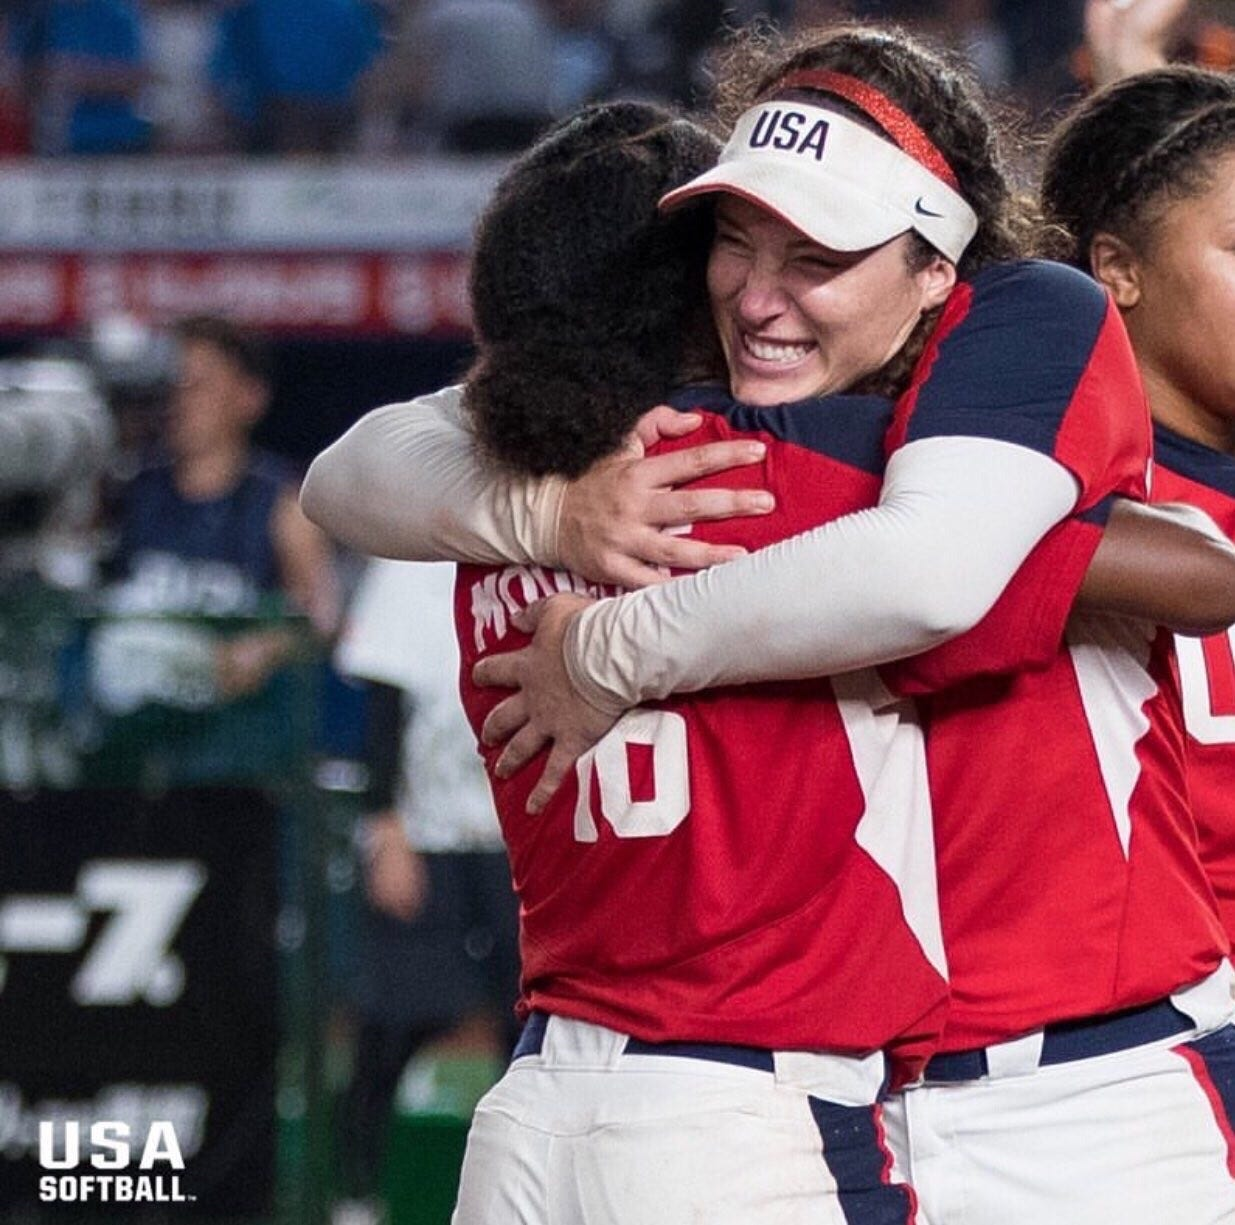 Valarie Arioto and teammate hugging